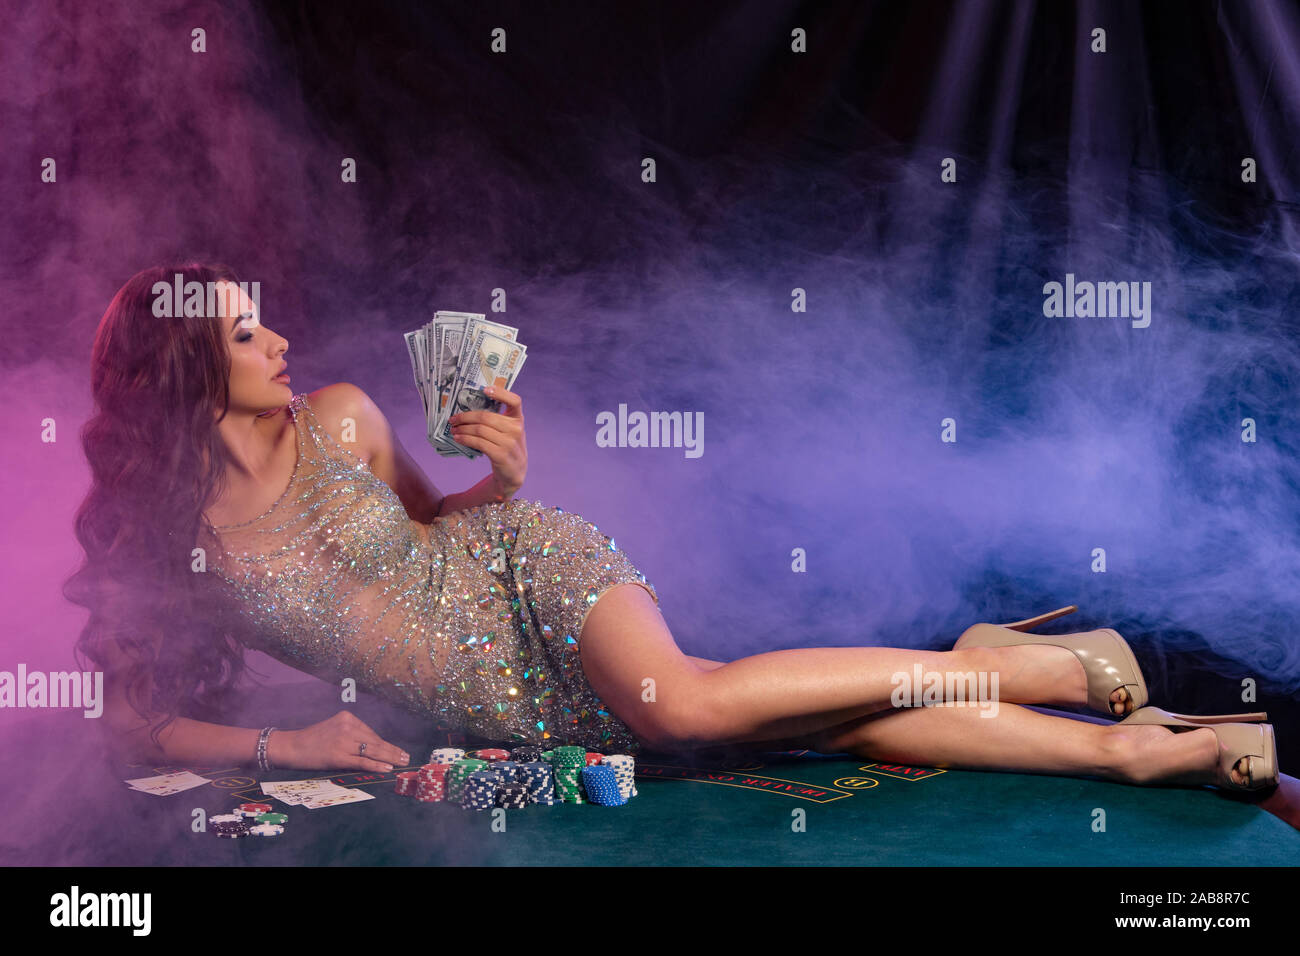 Girl In Golden Dress Playing Poker At Casino Holding Cash Laying On Table With Chips Cards On It Black Smoke Background Gambling Close Up Stock Photo Alamy